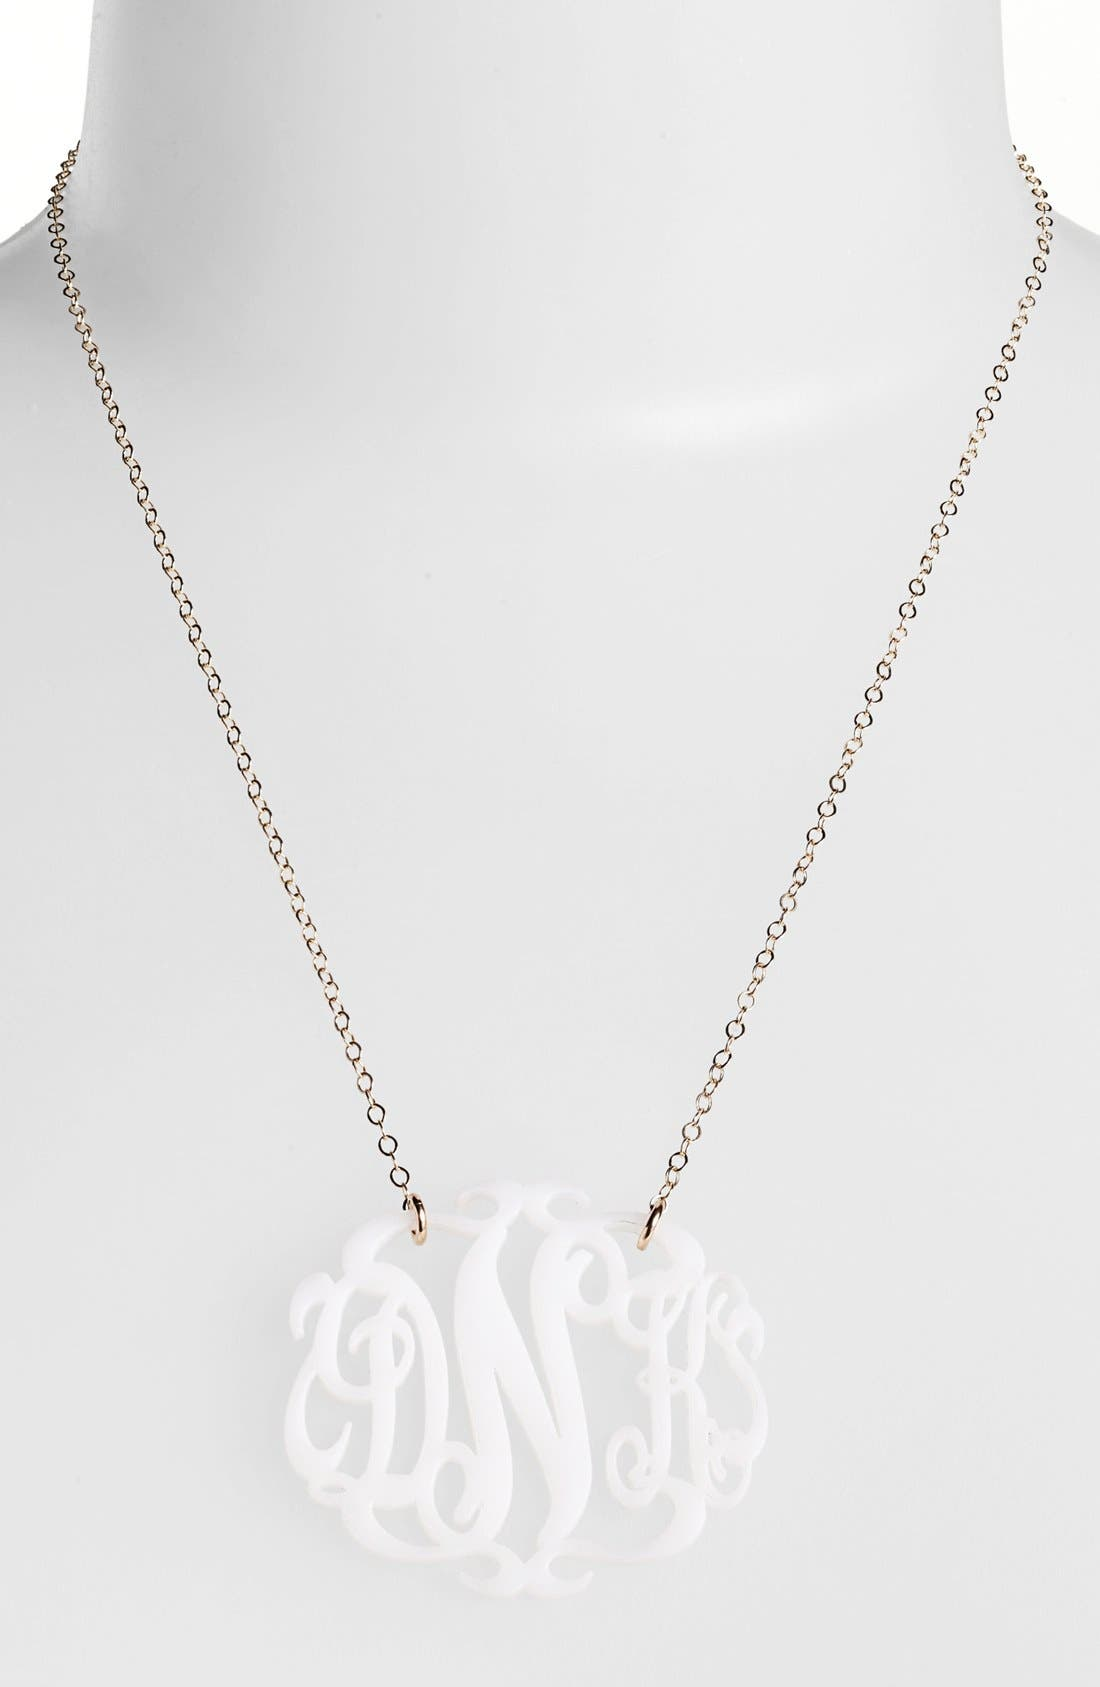 Moon and Lola Large Oval Personalized Monogram Pendant Necklace (Nordstrom Exclusive)